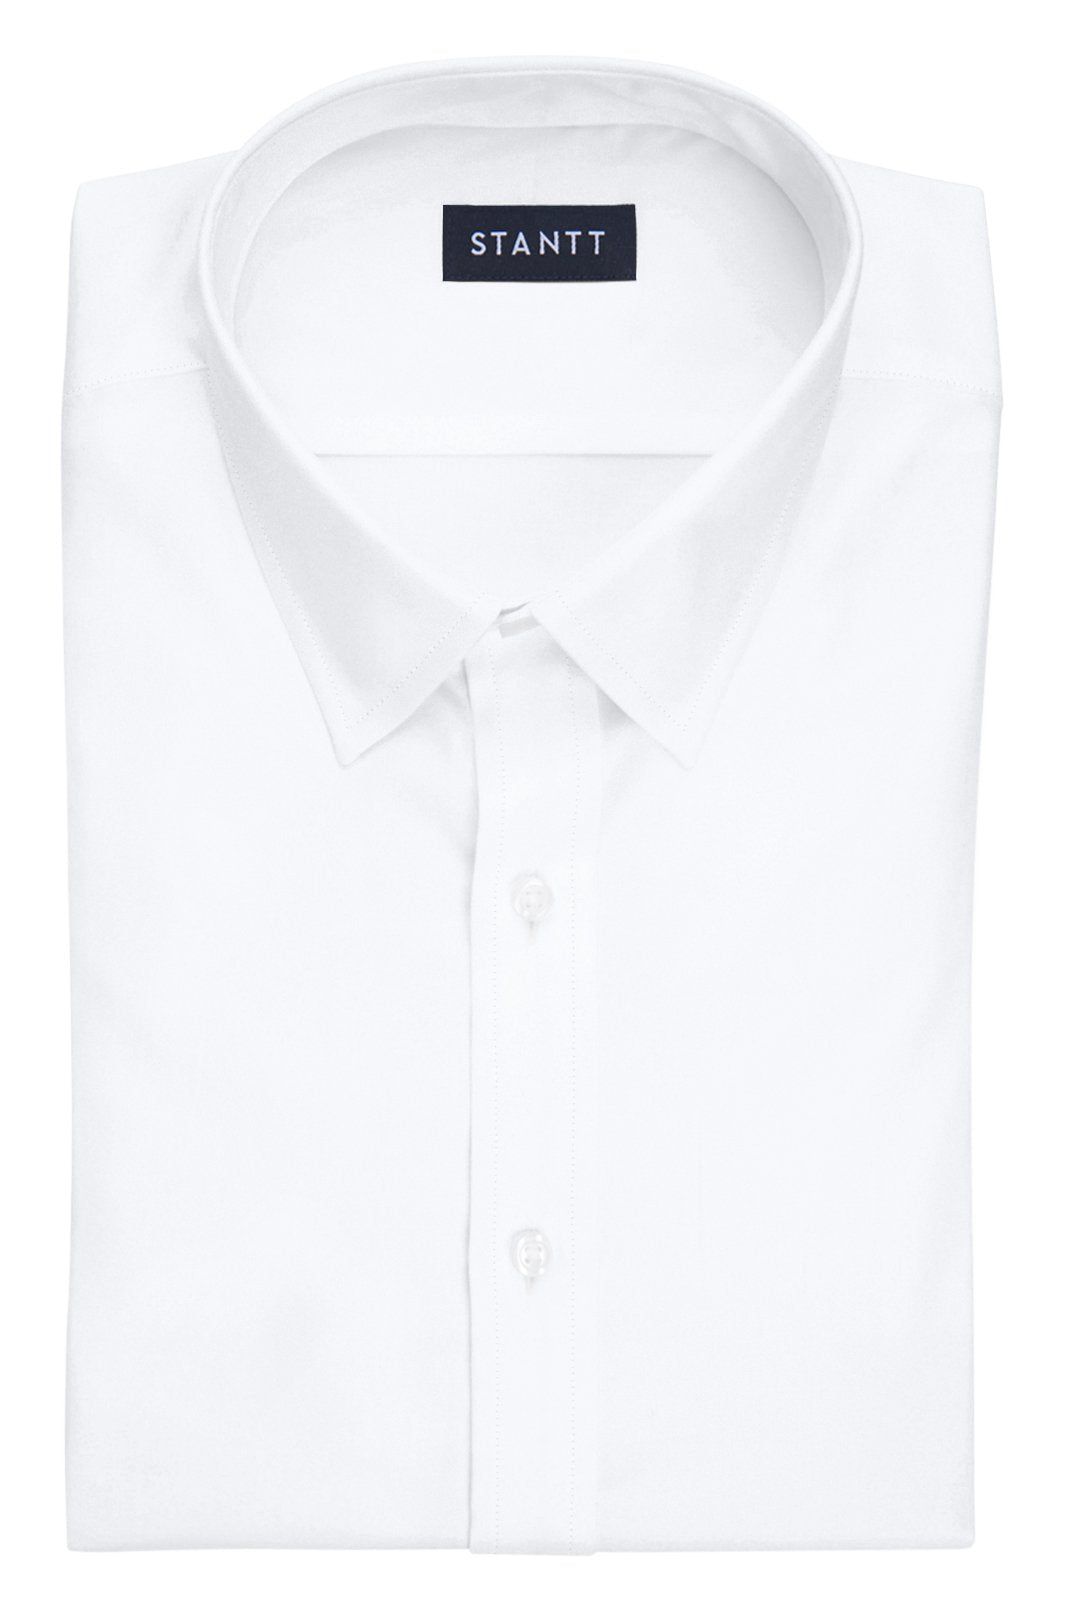 Fine White Poplin: Semi-Spread Collar, Barrel Cuff